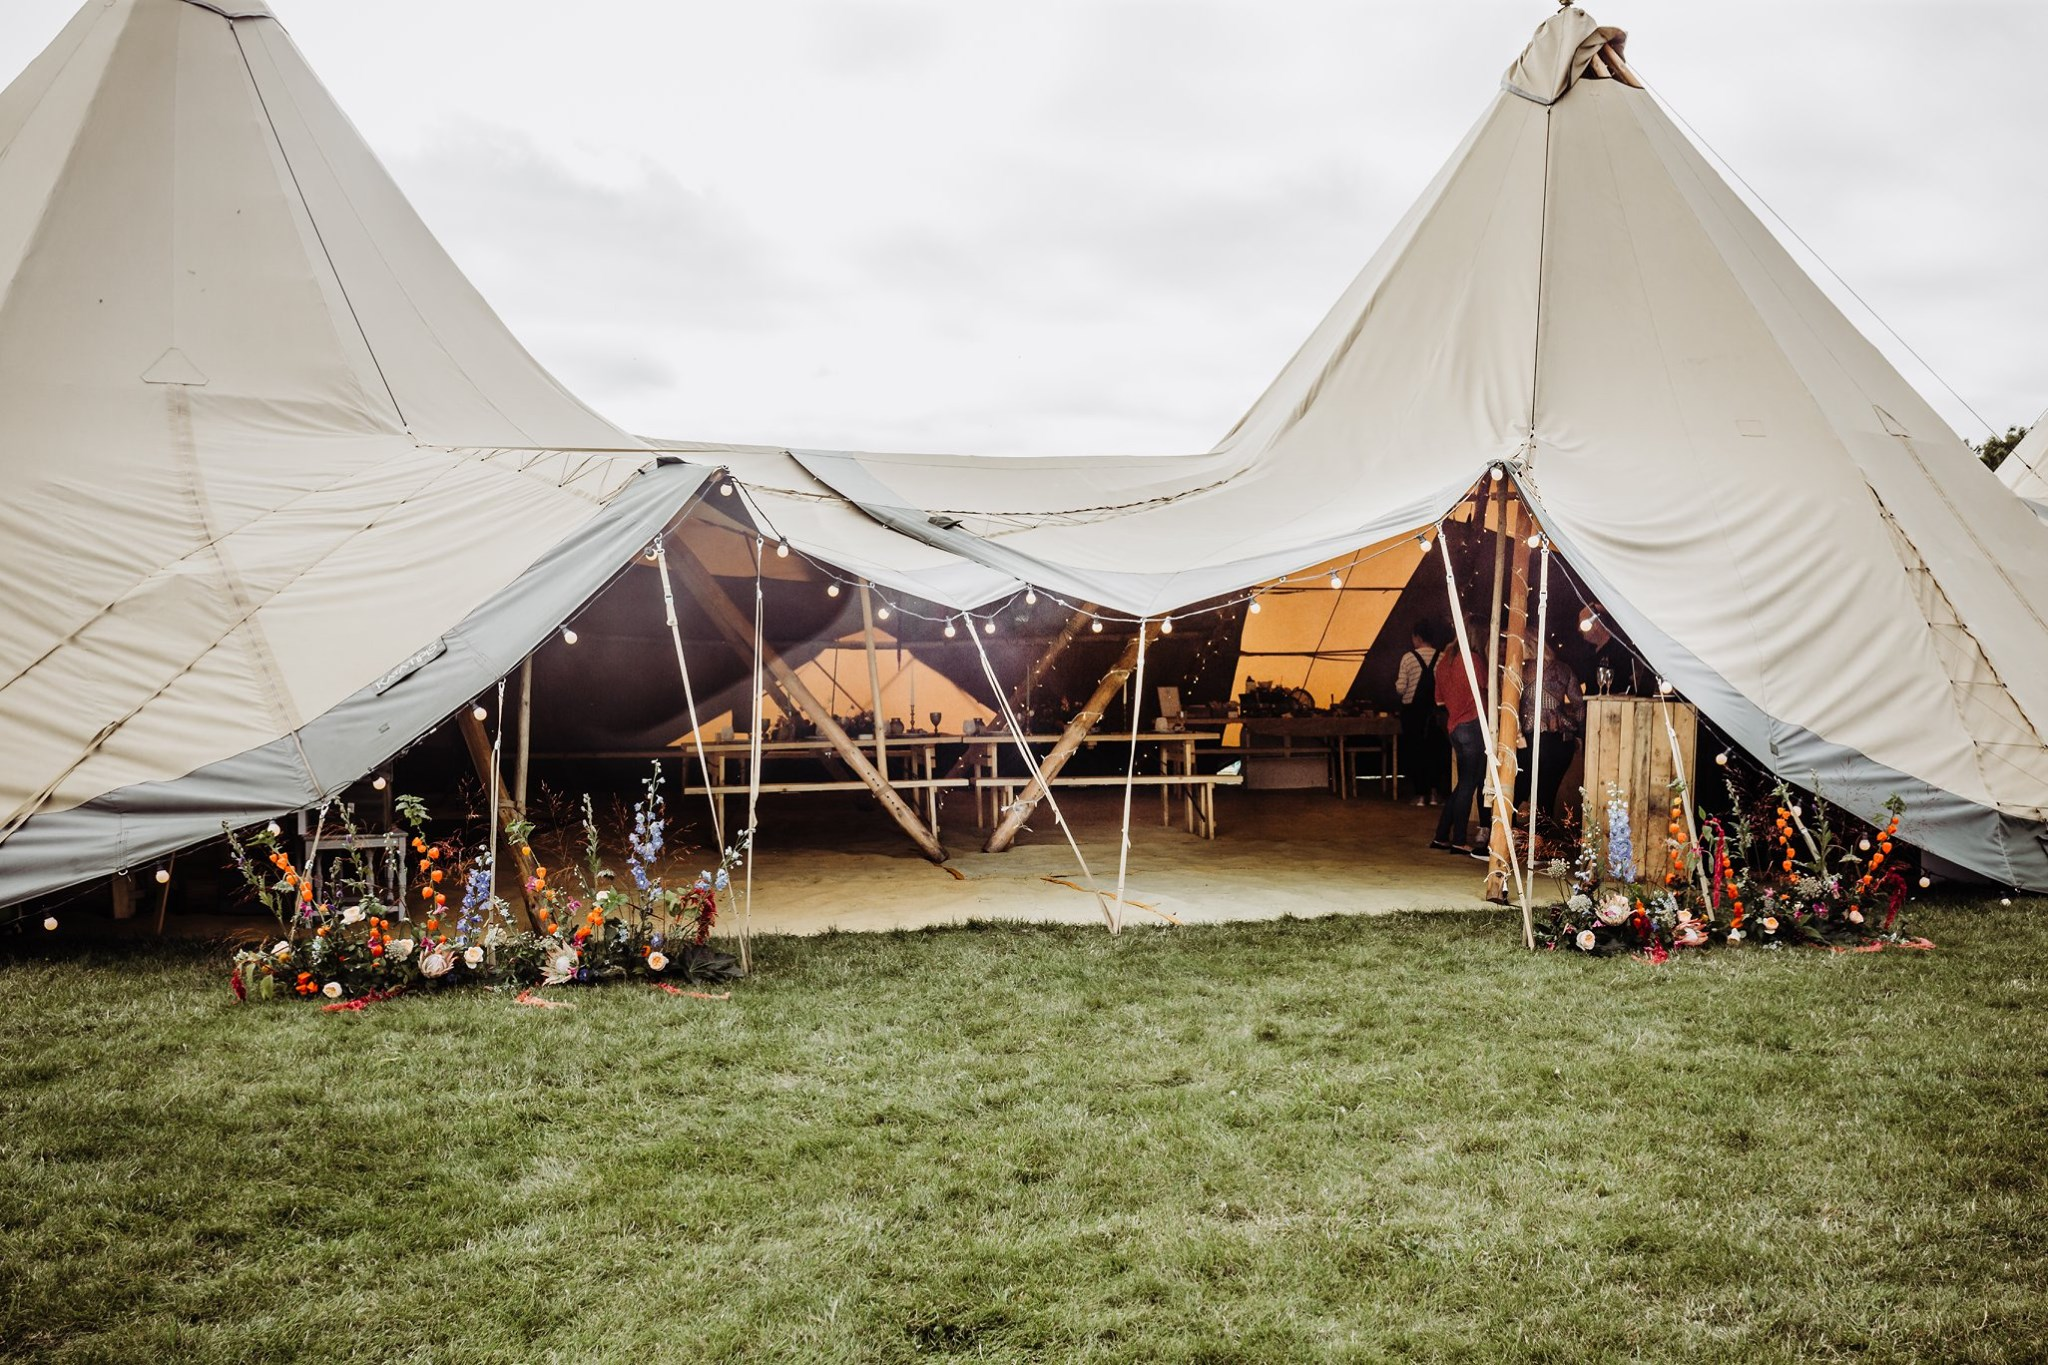 Photo of the entrance to 3 tipis with colourful, free-standing, wild flower displays on either side of entrance